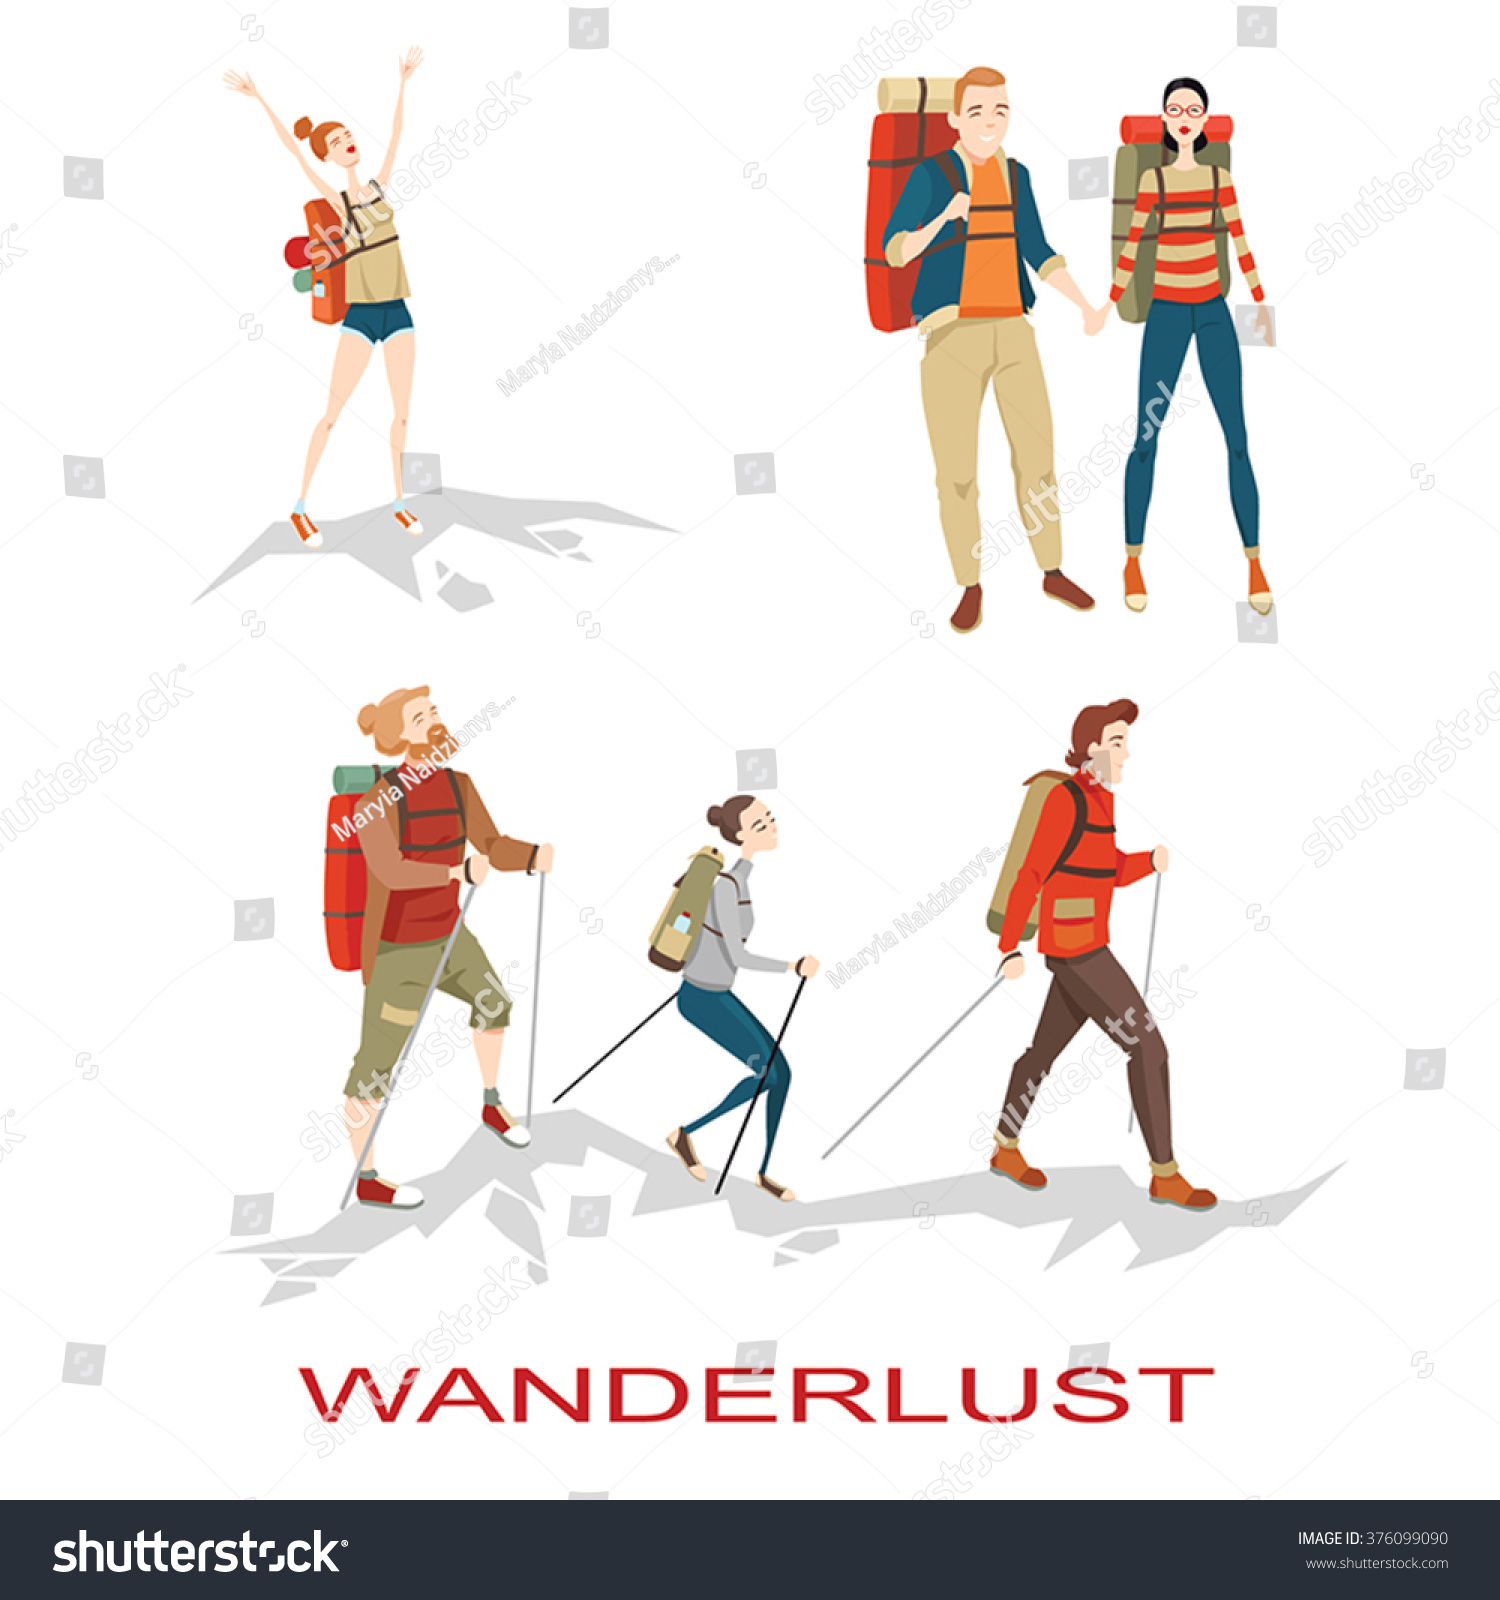 Set of vector illustrations of people hiking in mountains in cartoon style